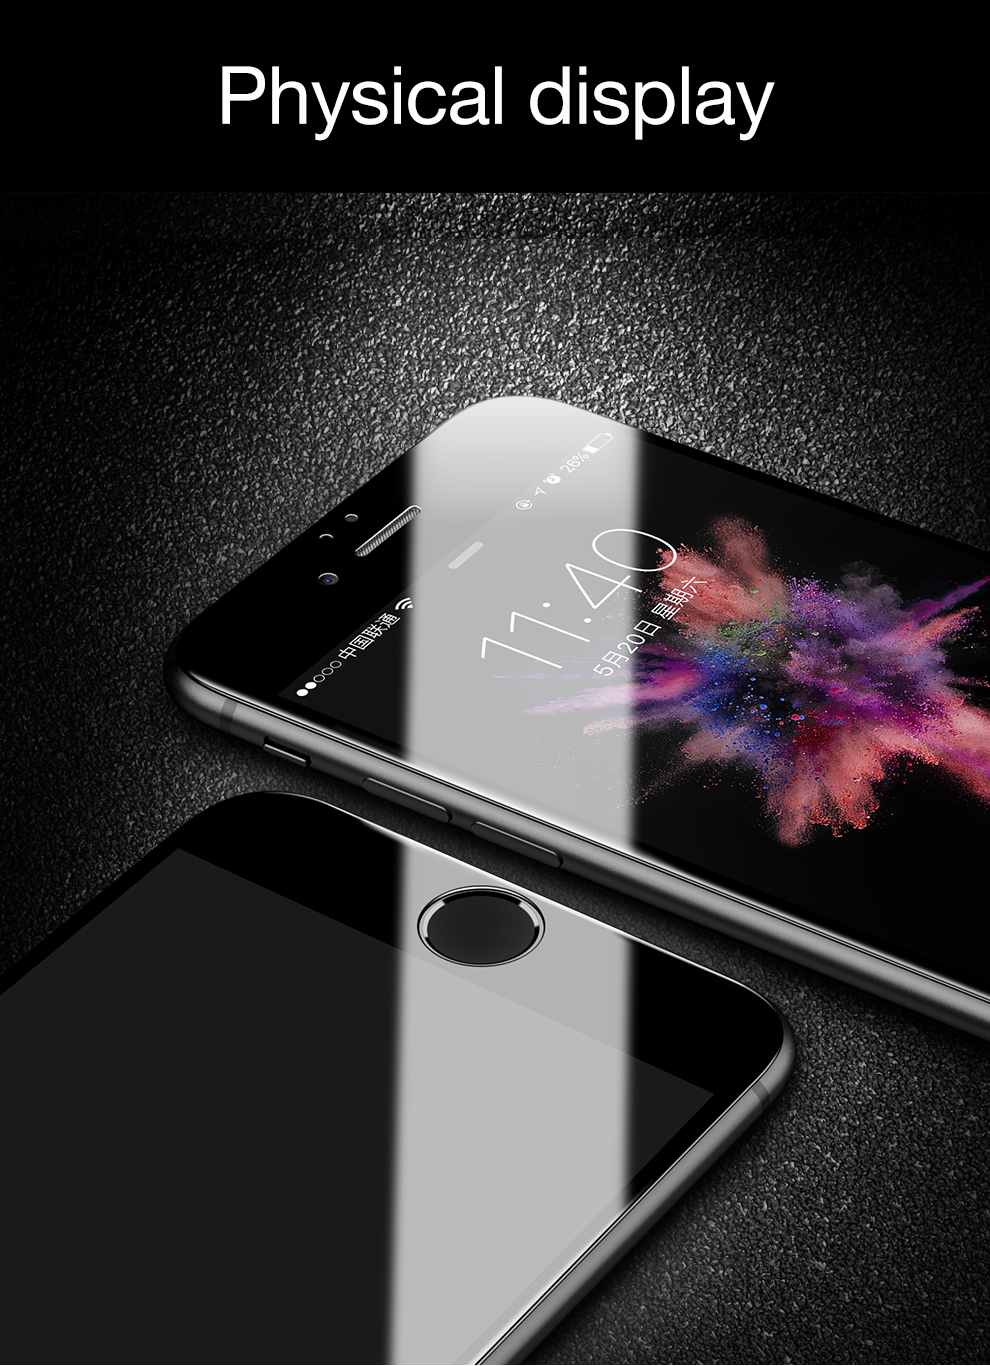 Bakeey 4D Curved Edge Tempered Glass Screen Protector For iPhone 8 Plus